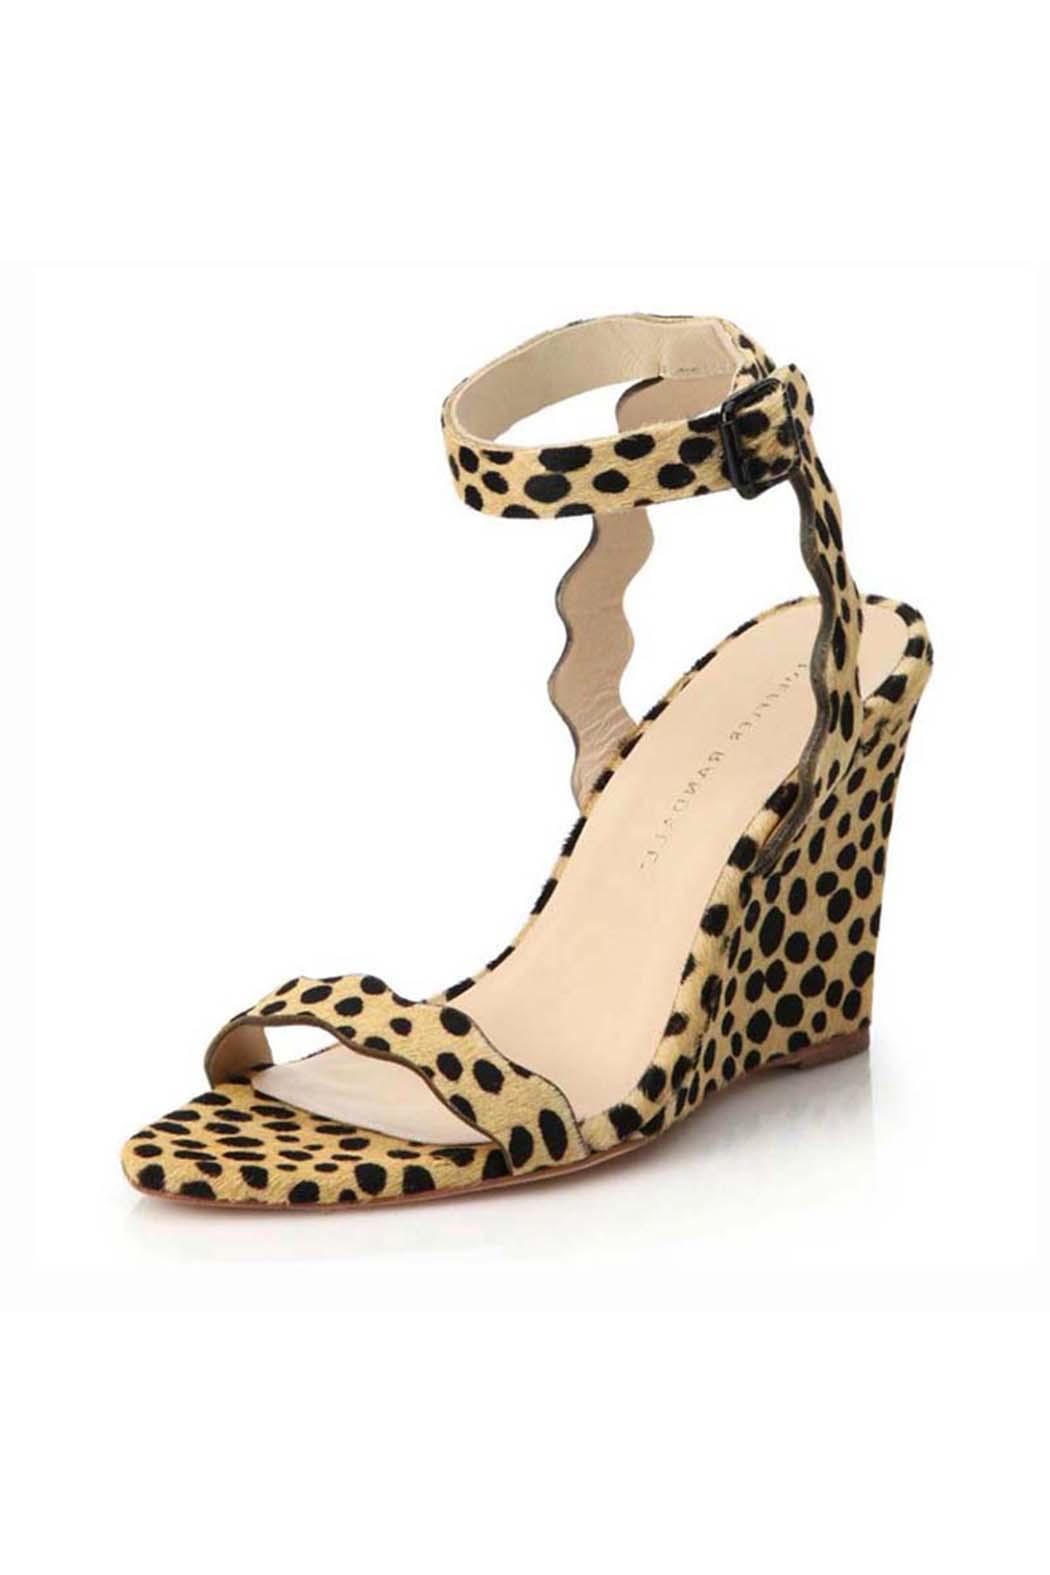 83a660a63231b Loeffler Randall Piper Wedge Cheetah from Alexandria by Bishop ...